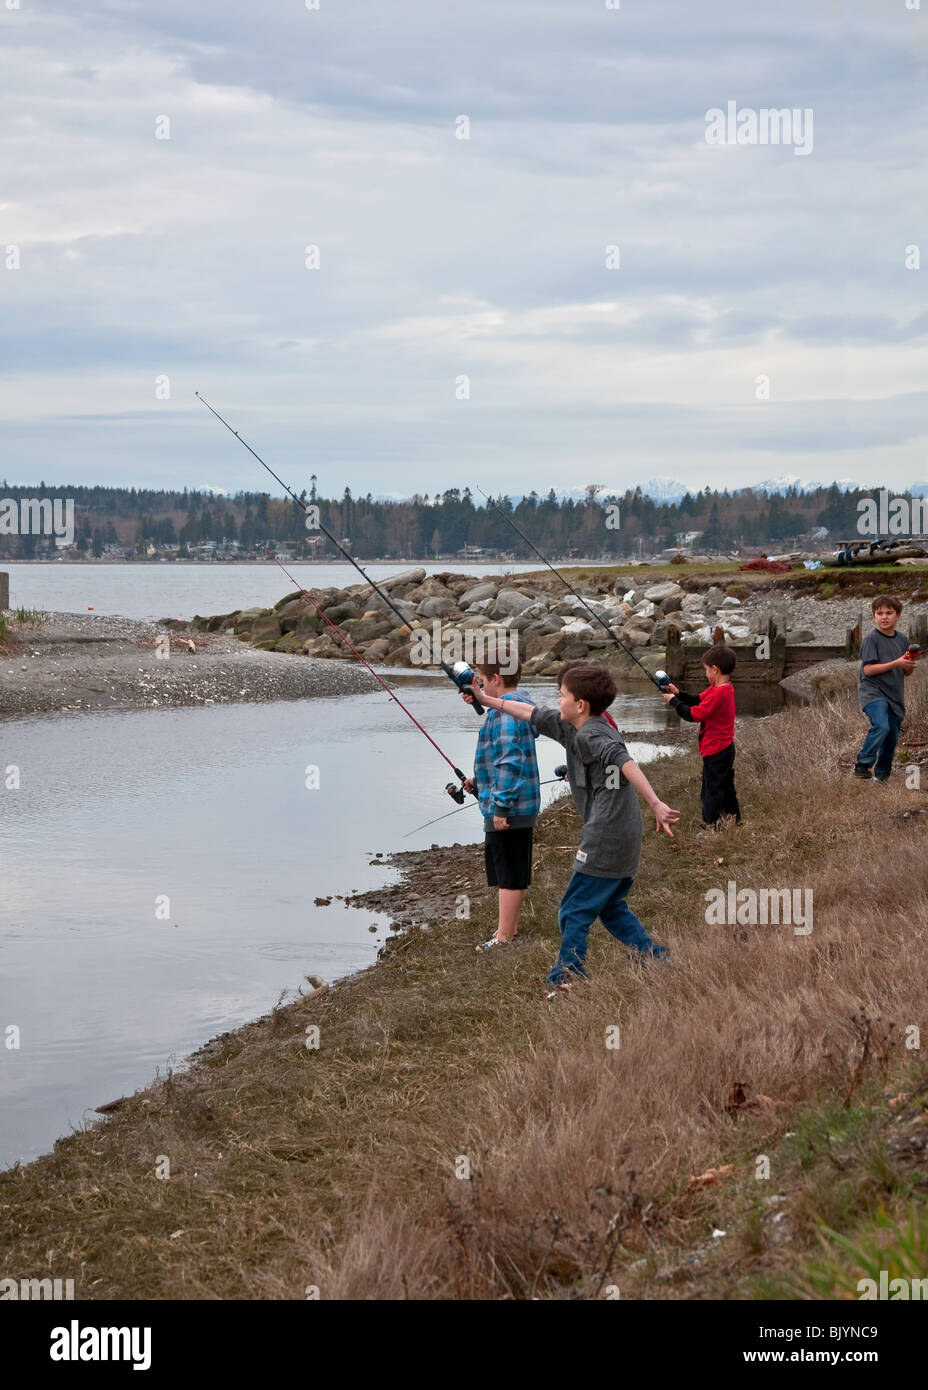 This 5 young boys are having a great time fishing on a cold spring day in Birch Bay Washington. Shot is full of - Stock Image